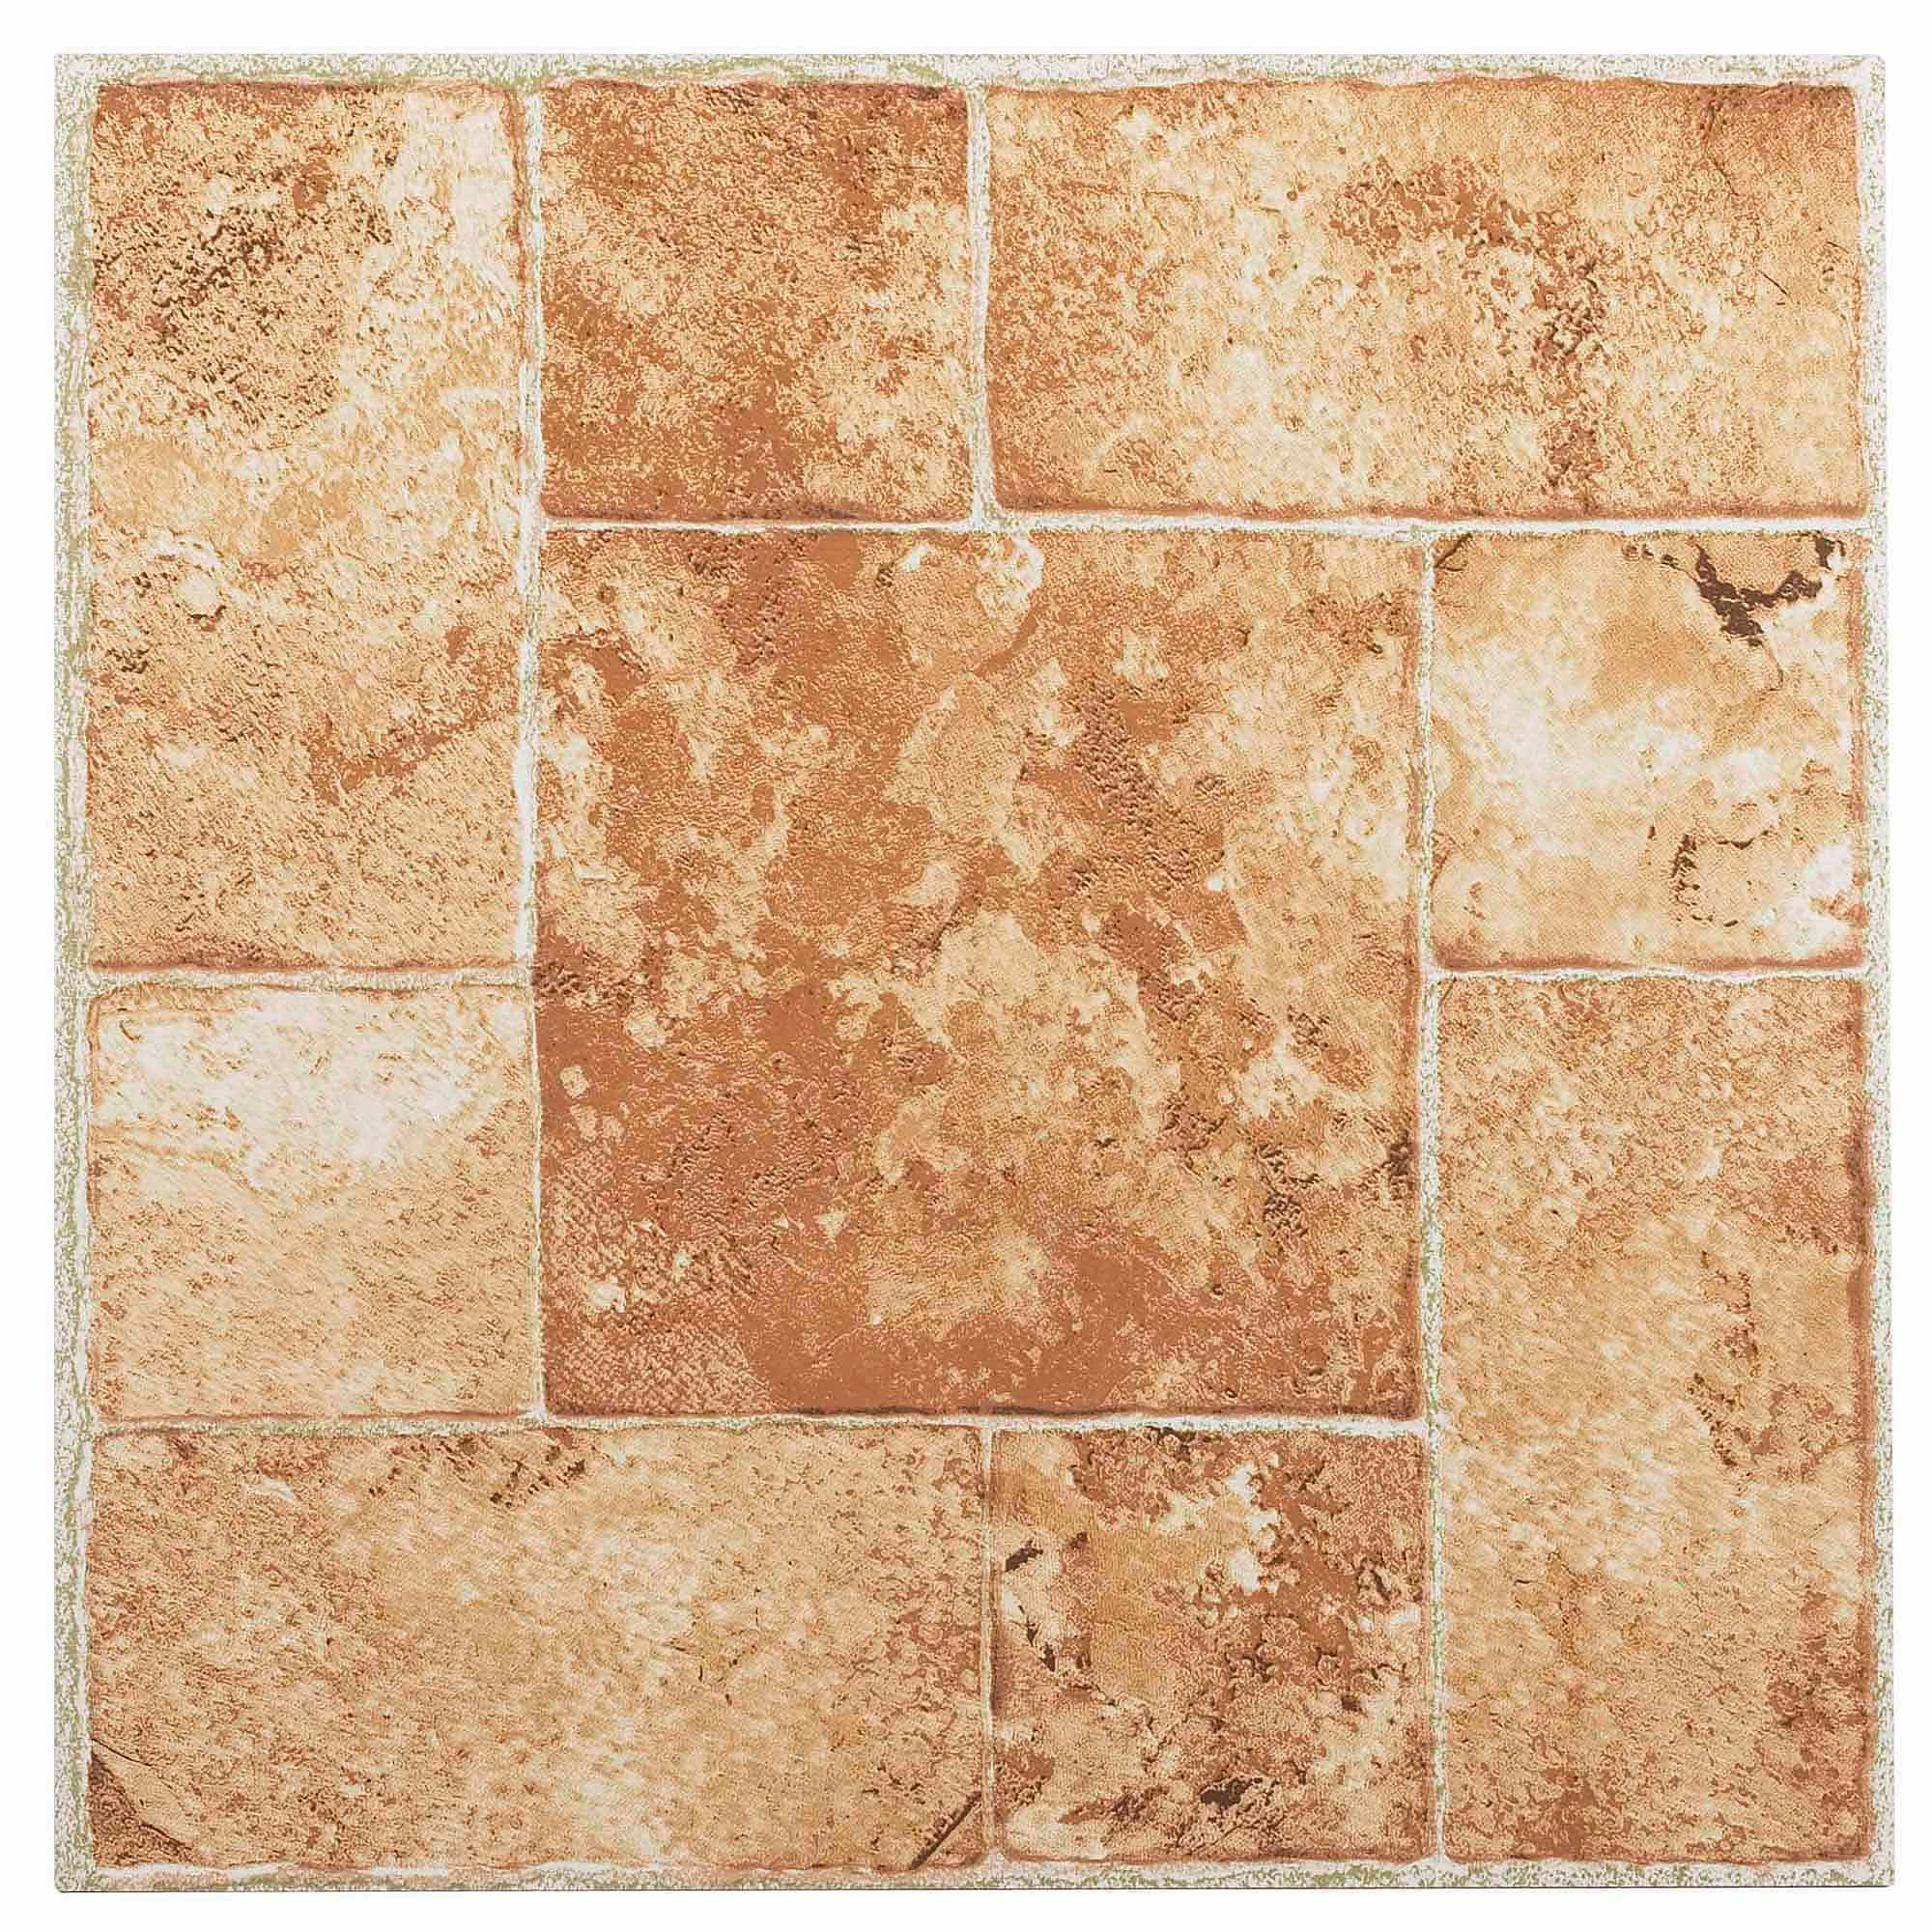 Vinyl flooring walmart nexus beige terracotta 12x12 self adhesive vinyl floor tile 20 tiles20 sq dailygadgetfo Gallery